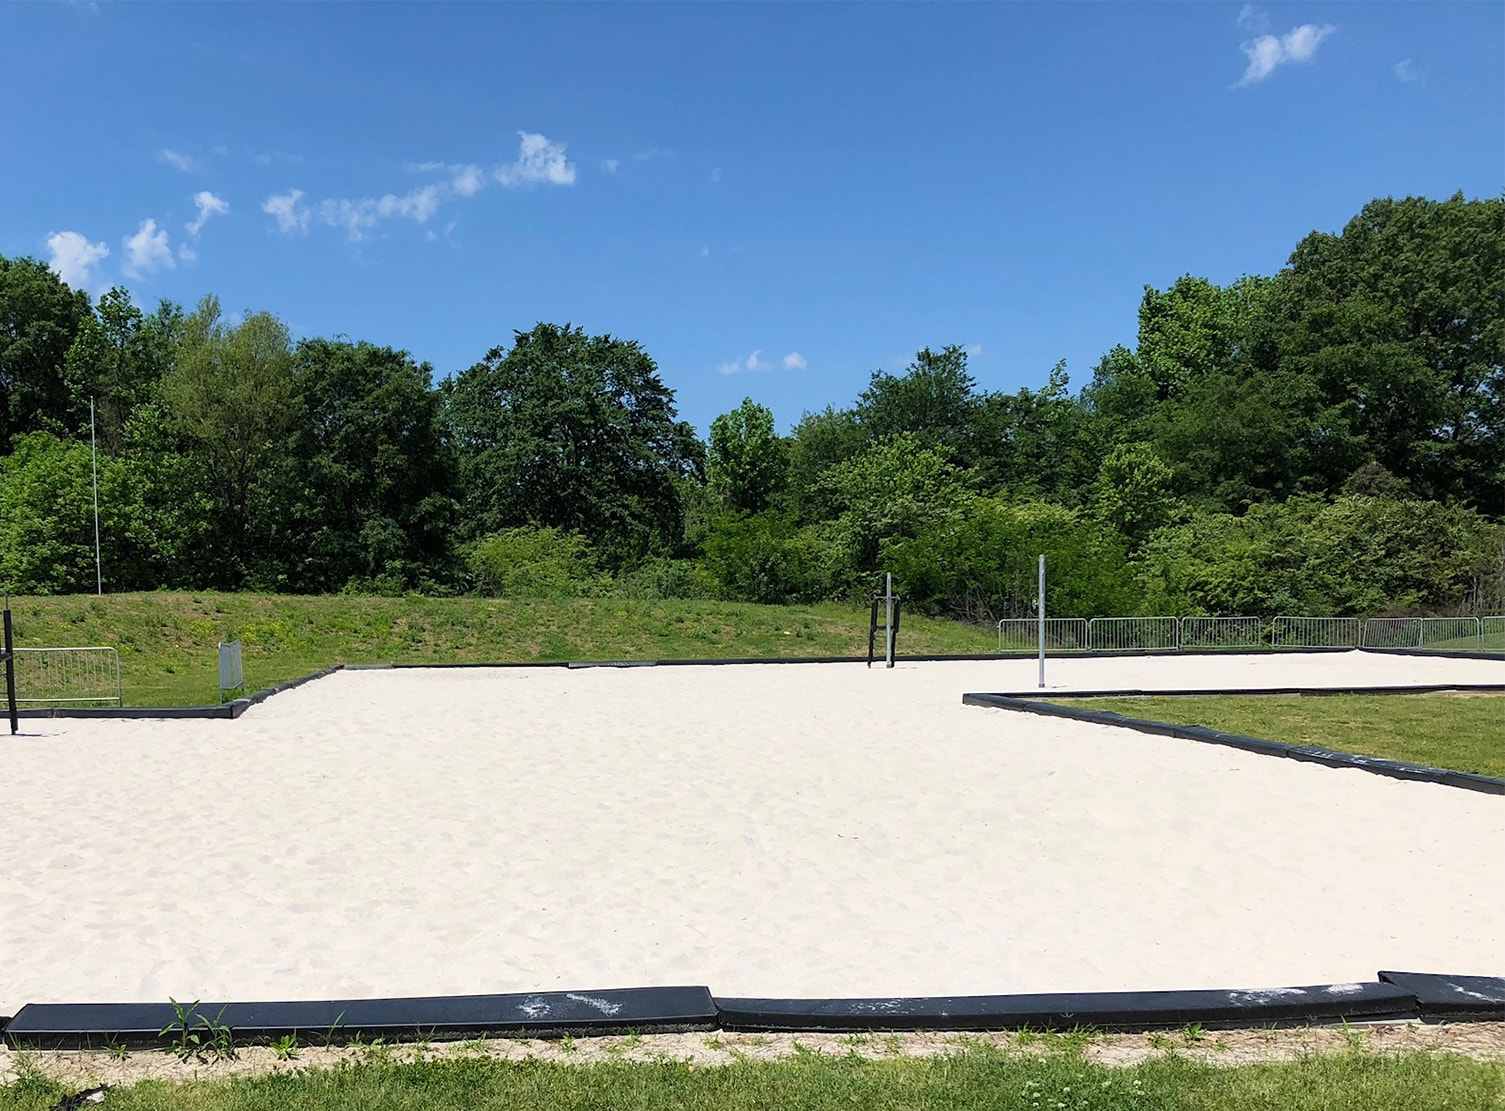 sand volleyball court in field